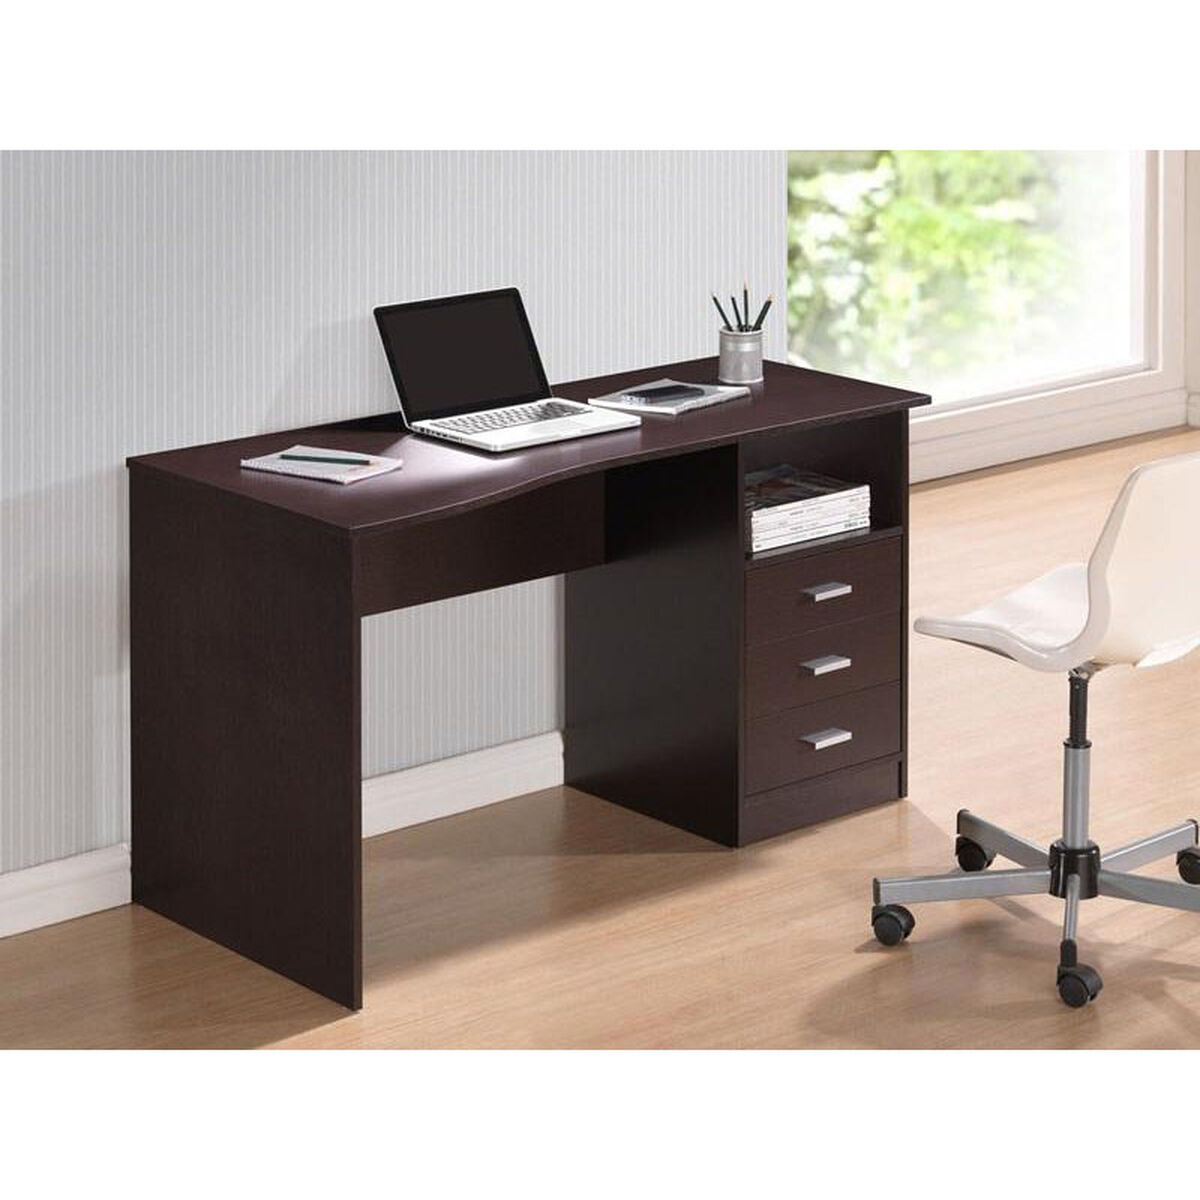 Our Techni Mobili Classic Computer Desk With Multiple Drawers Wenge Is On Now